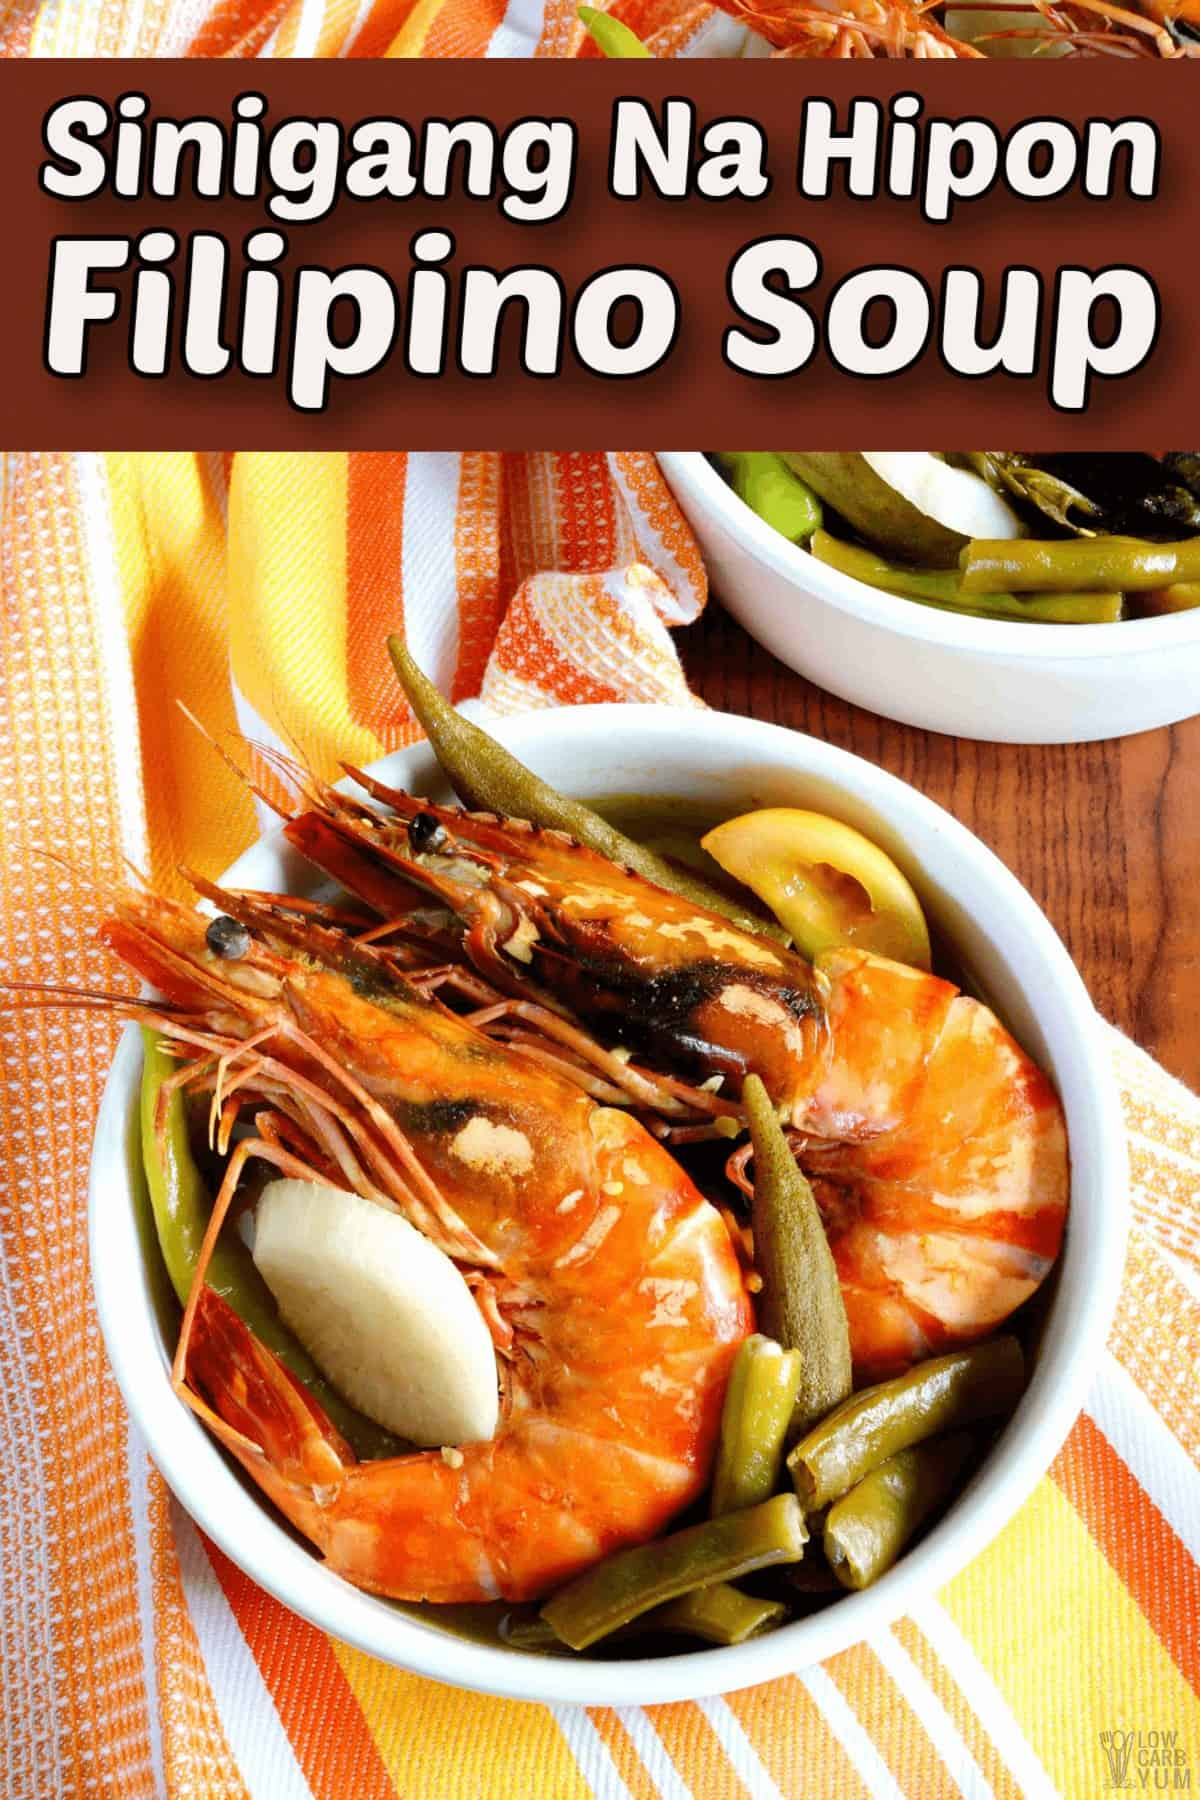 sinigang na hipon filipino soup pintrest image